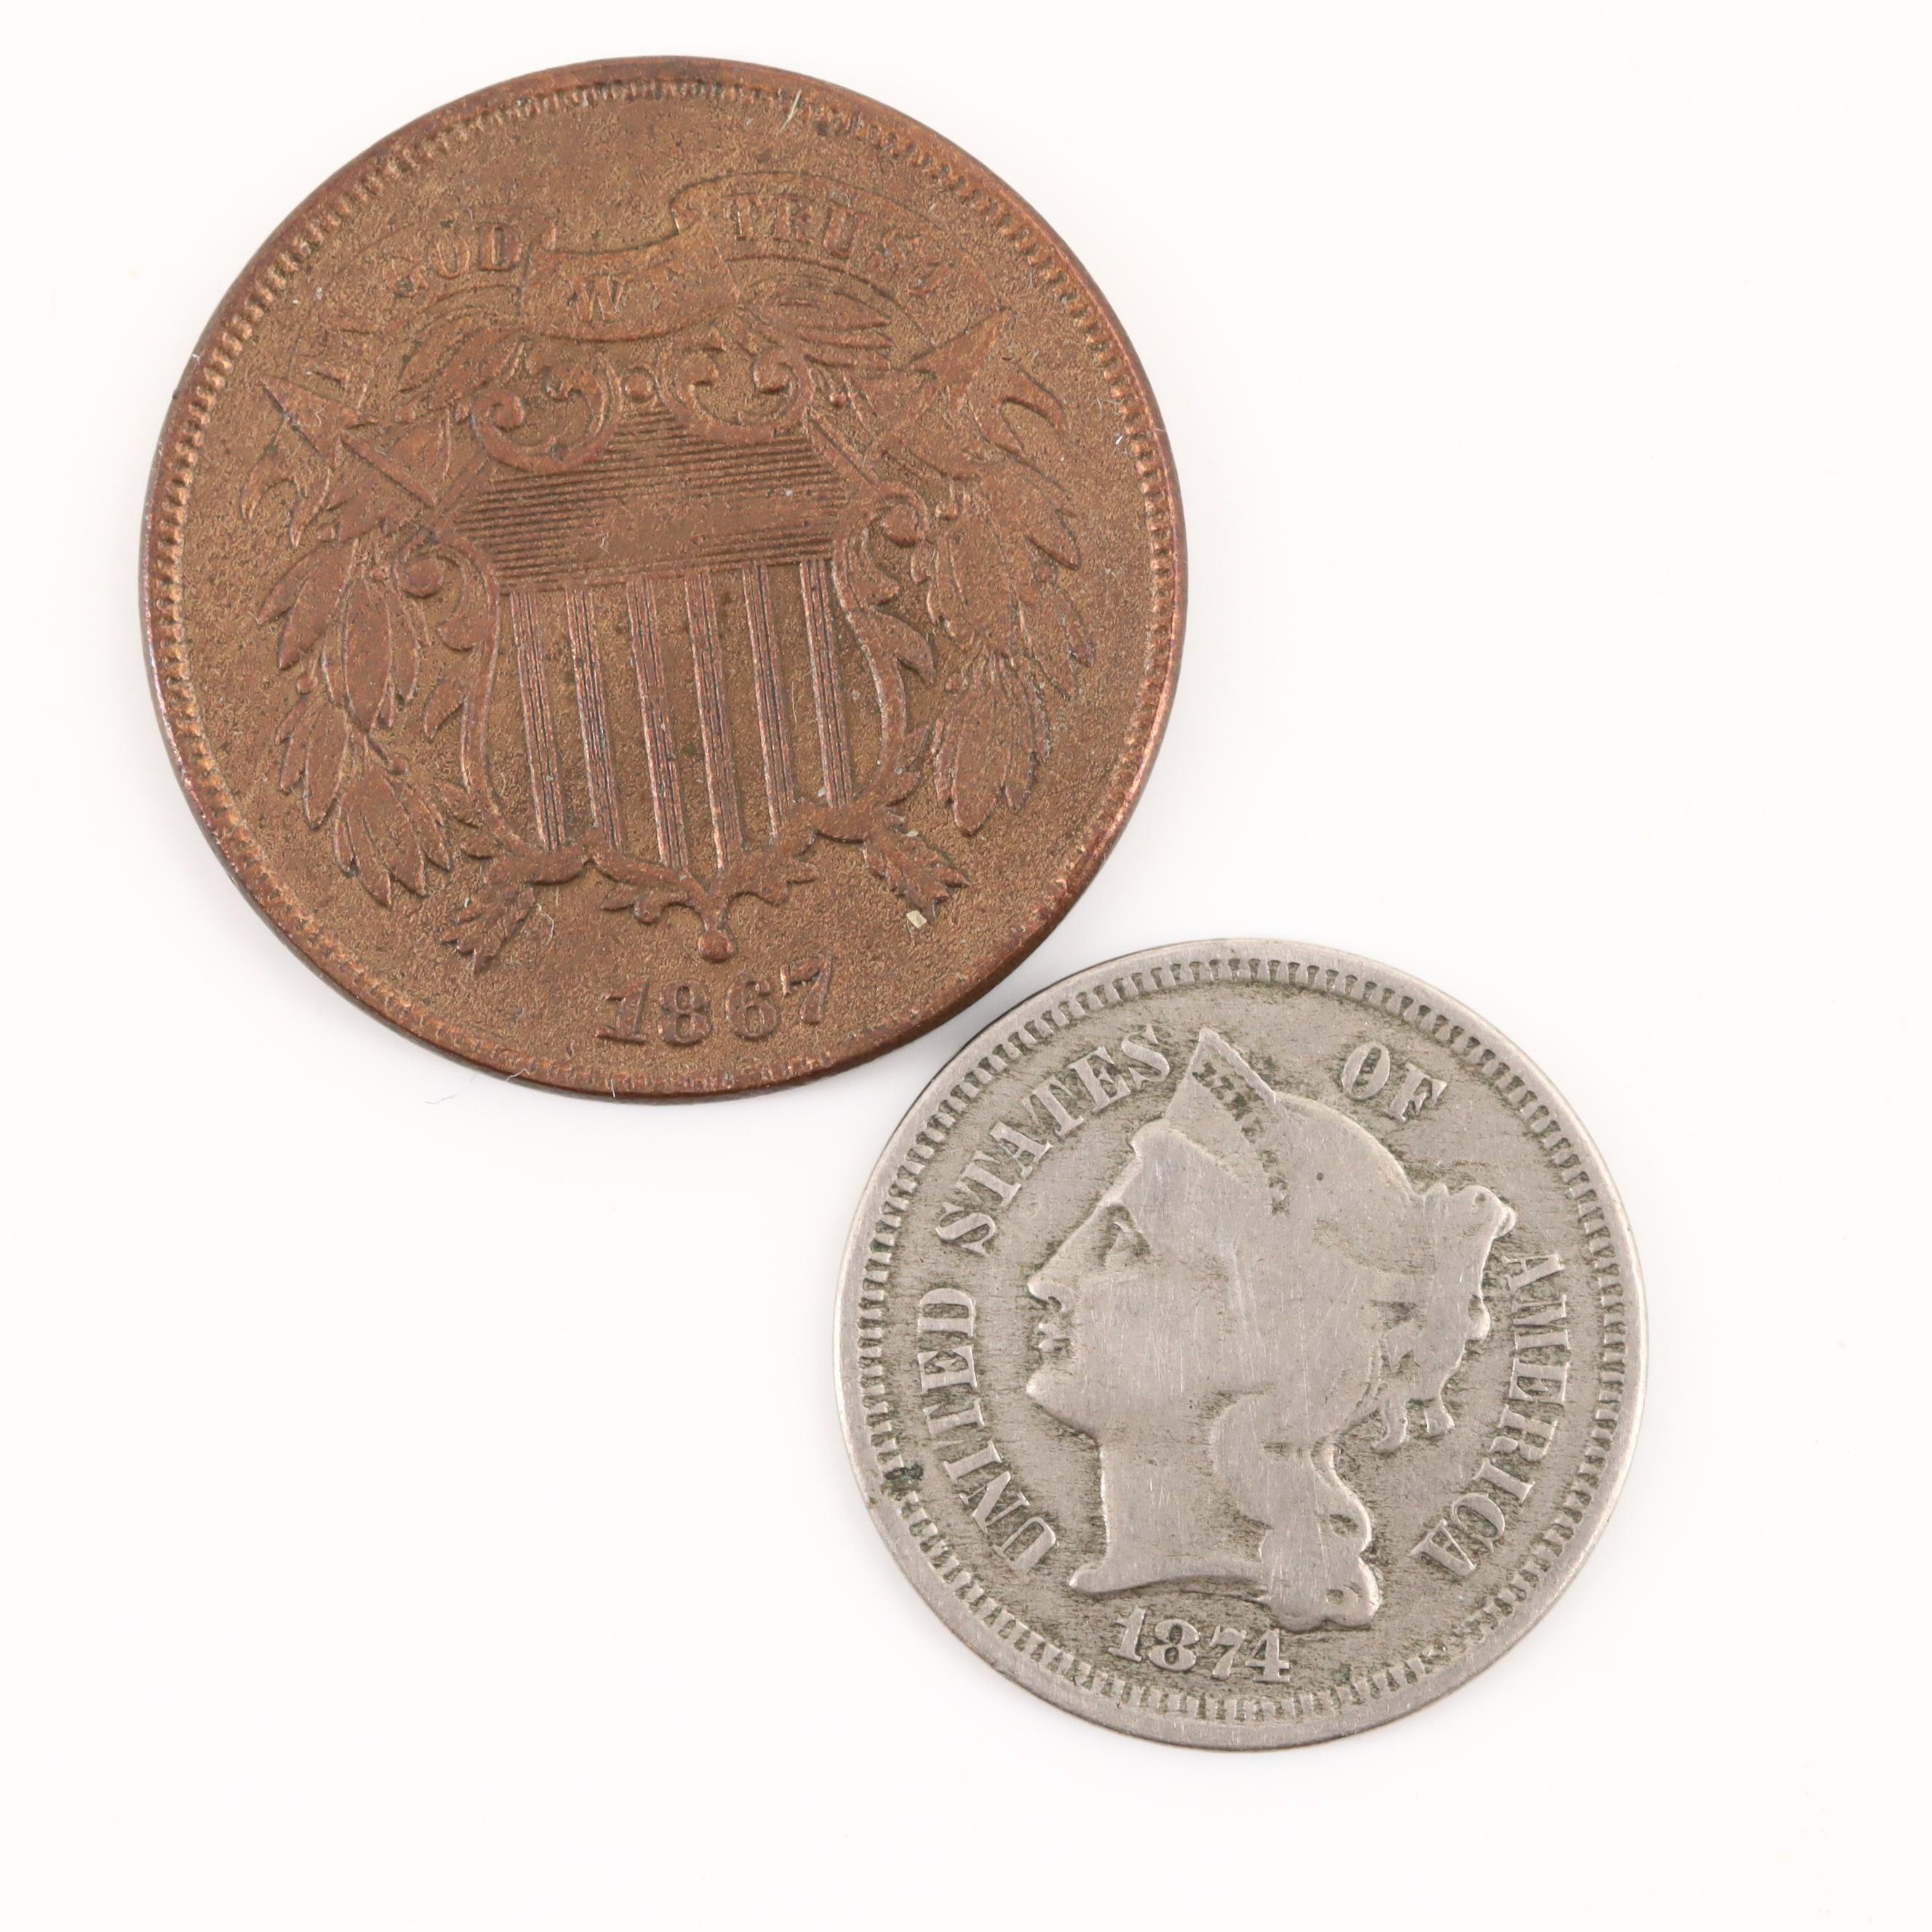 U.S. 1867 2-Cent Shield Coin and an 1874 Liberty Head 3-Cent Nickel Coin